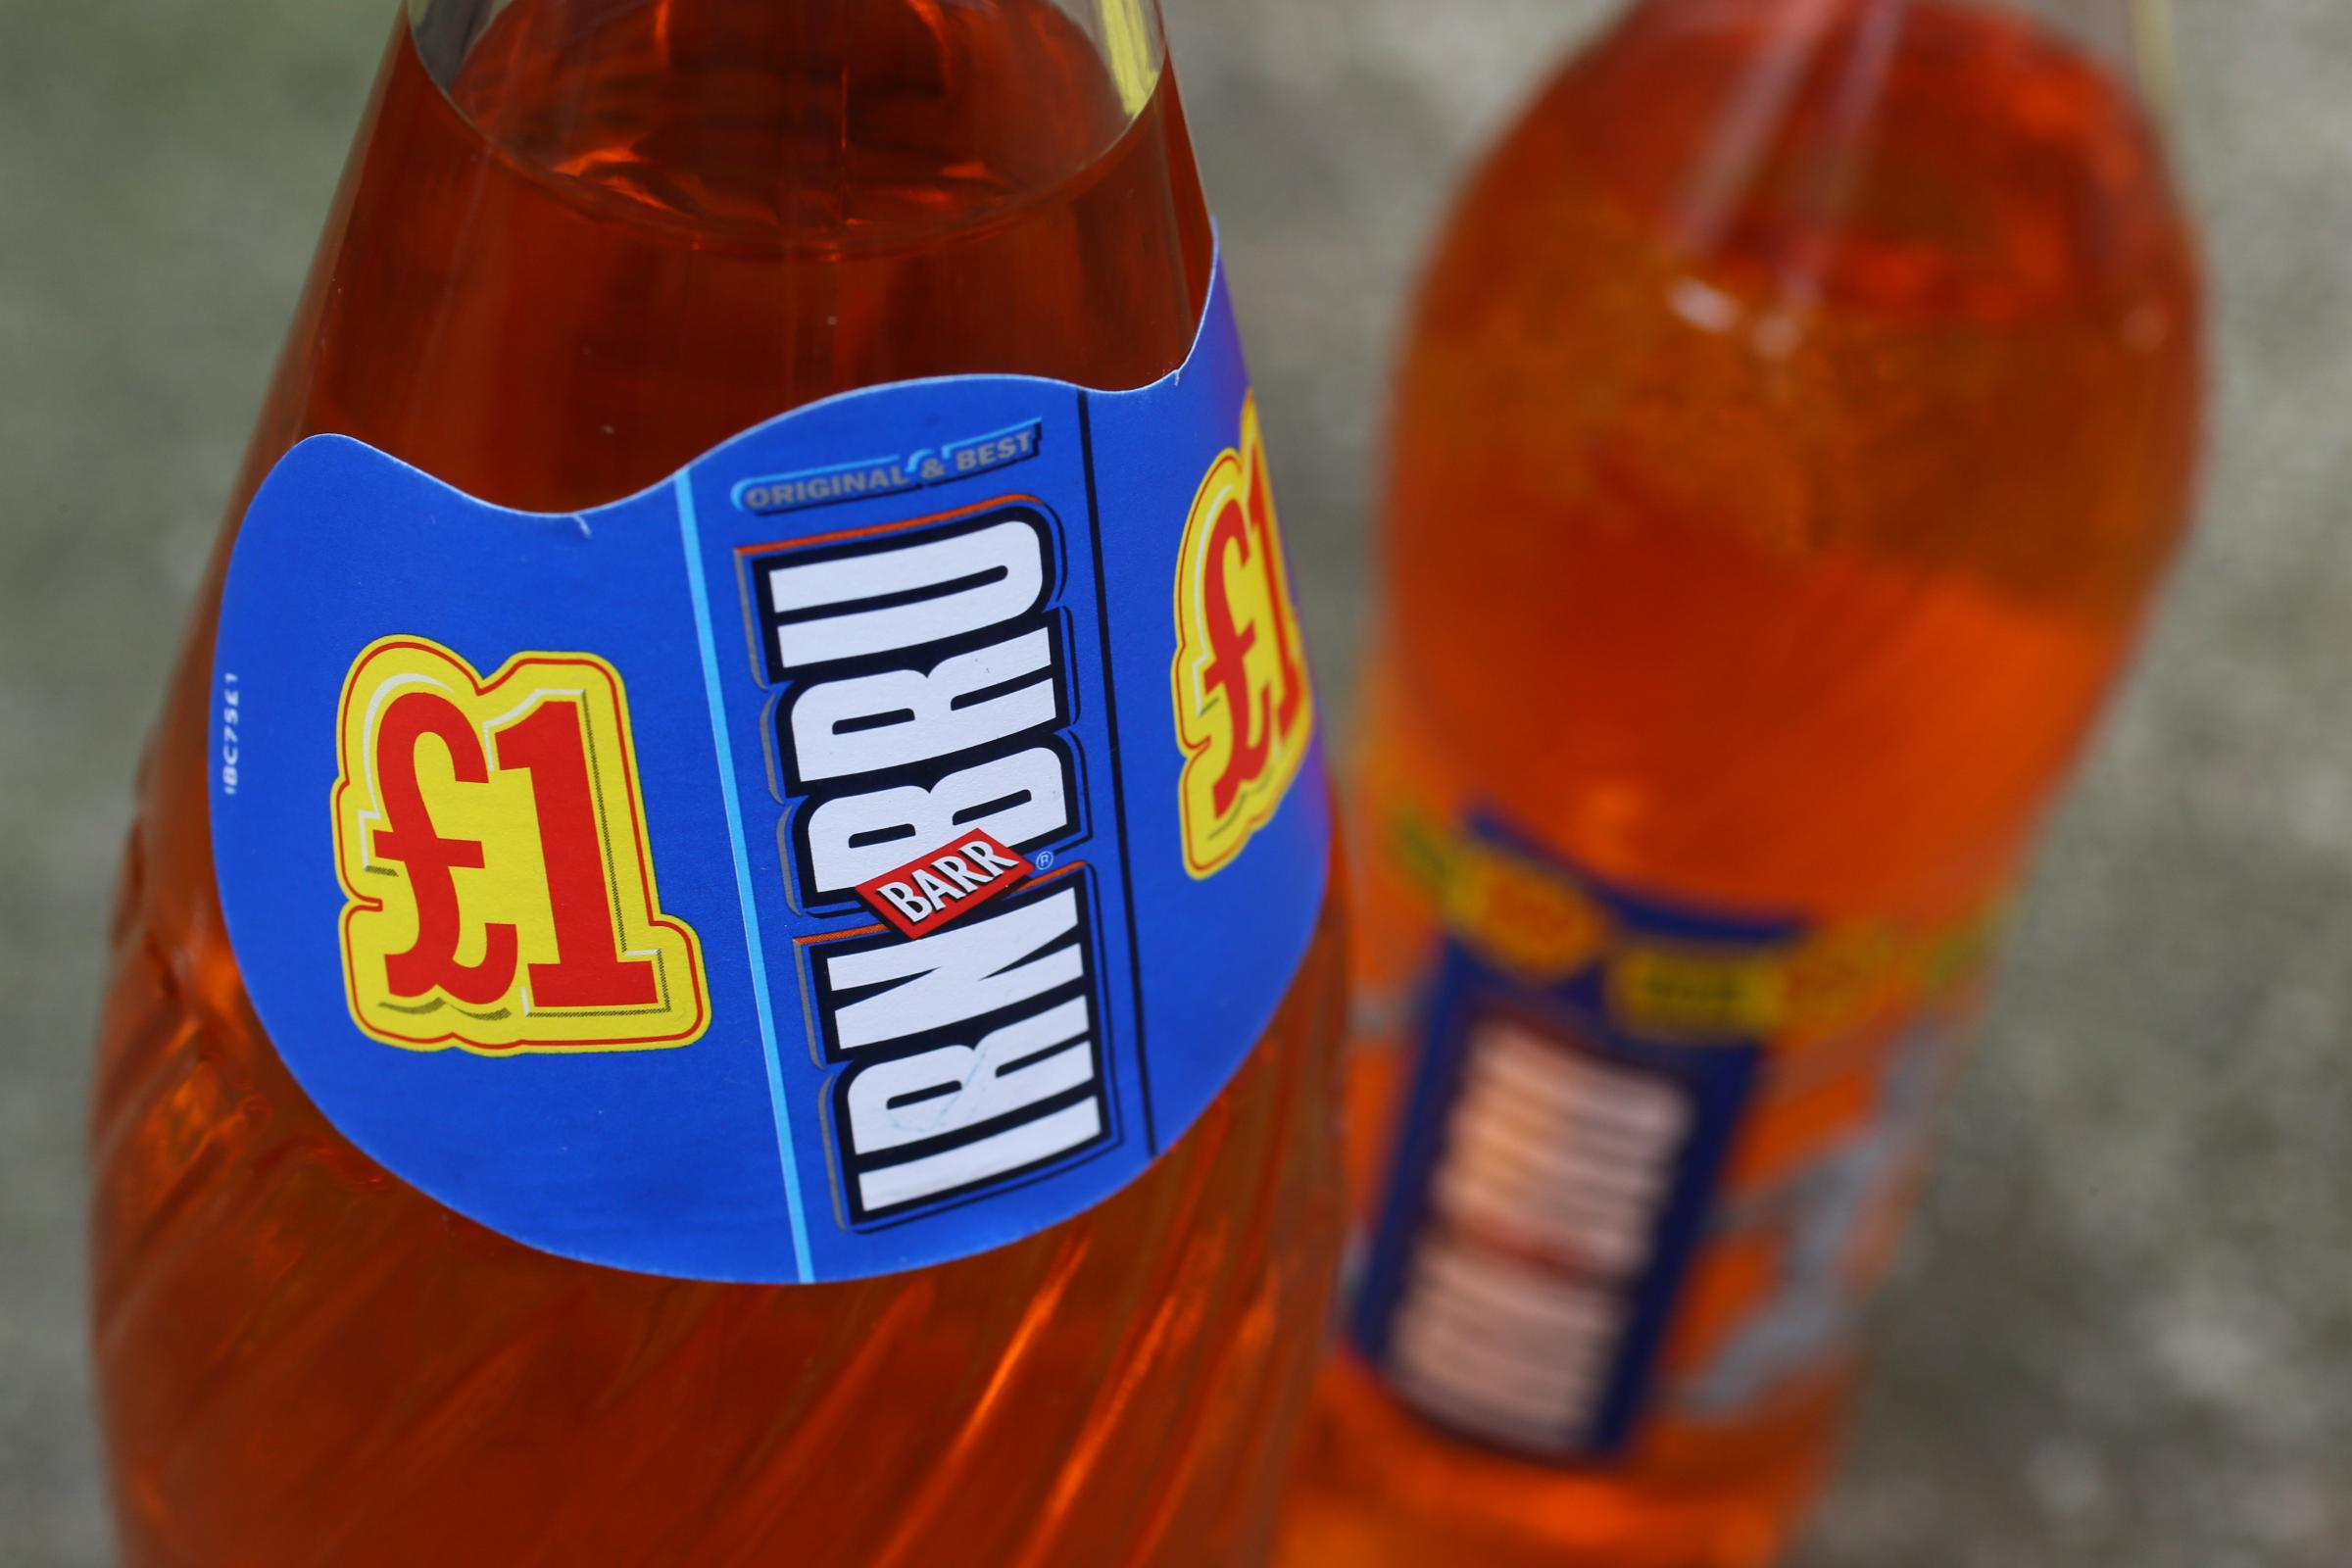 The total drinks equate to 600,000 drank a day in Scotland